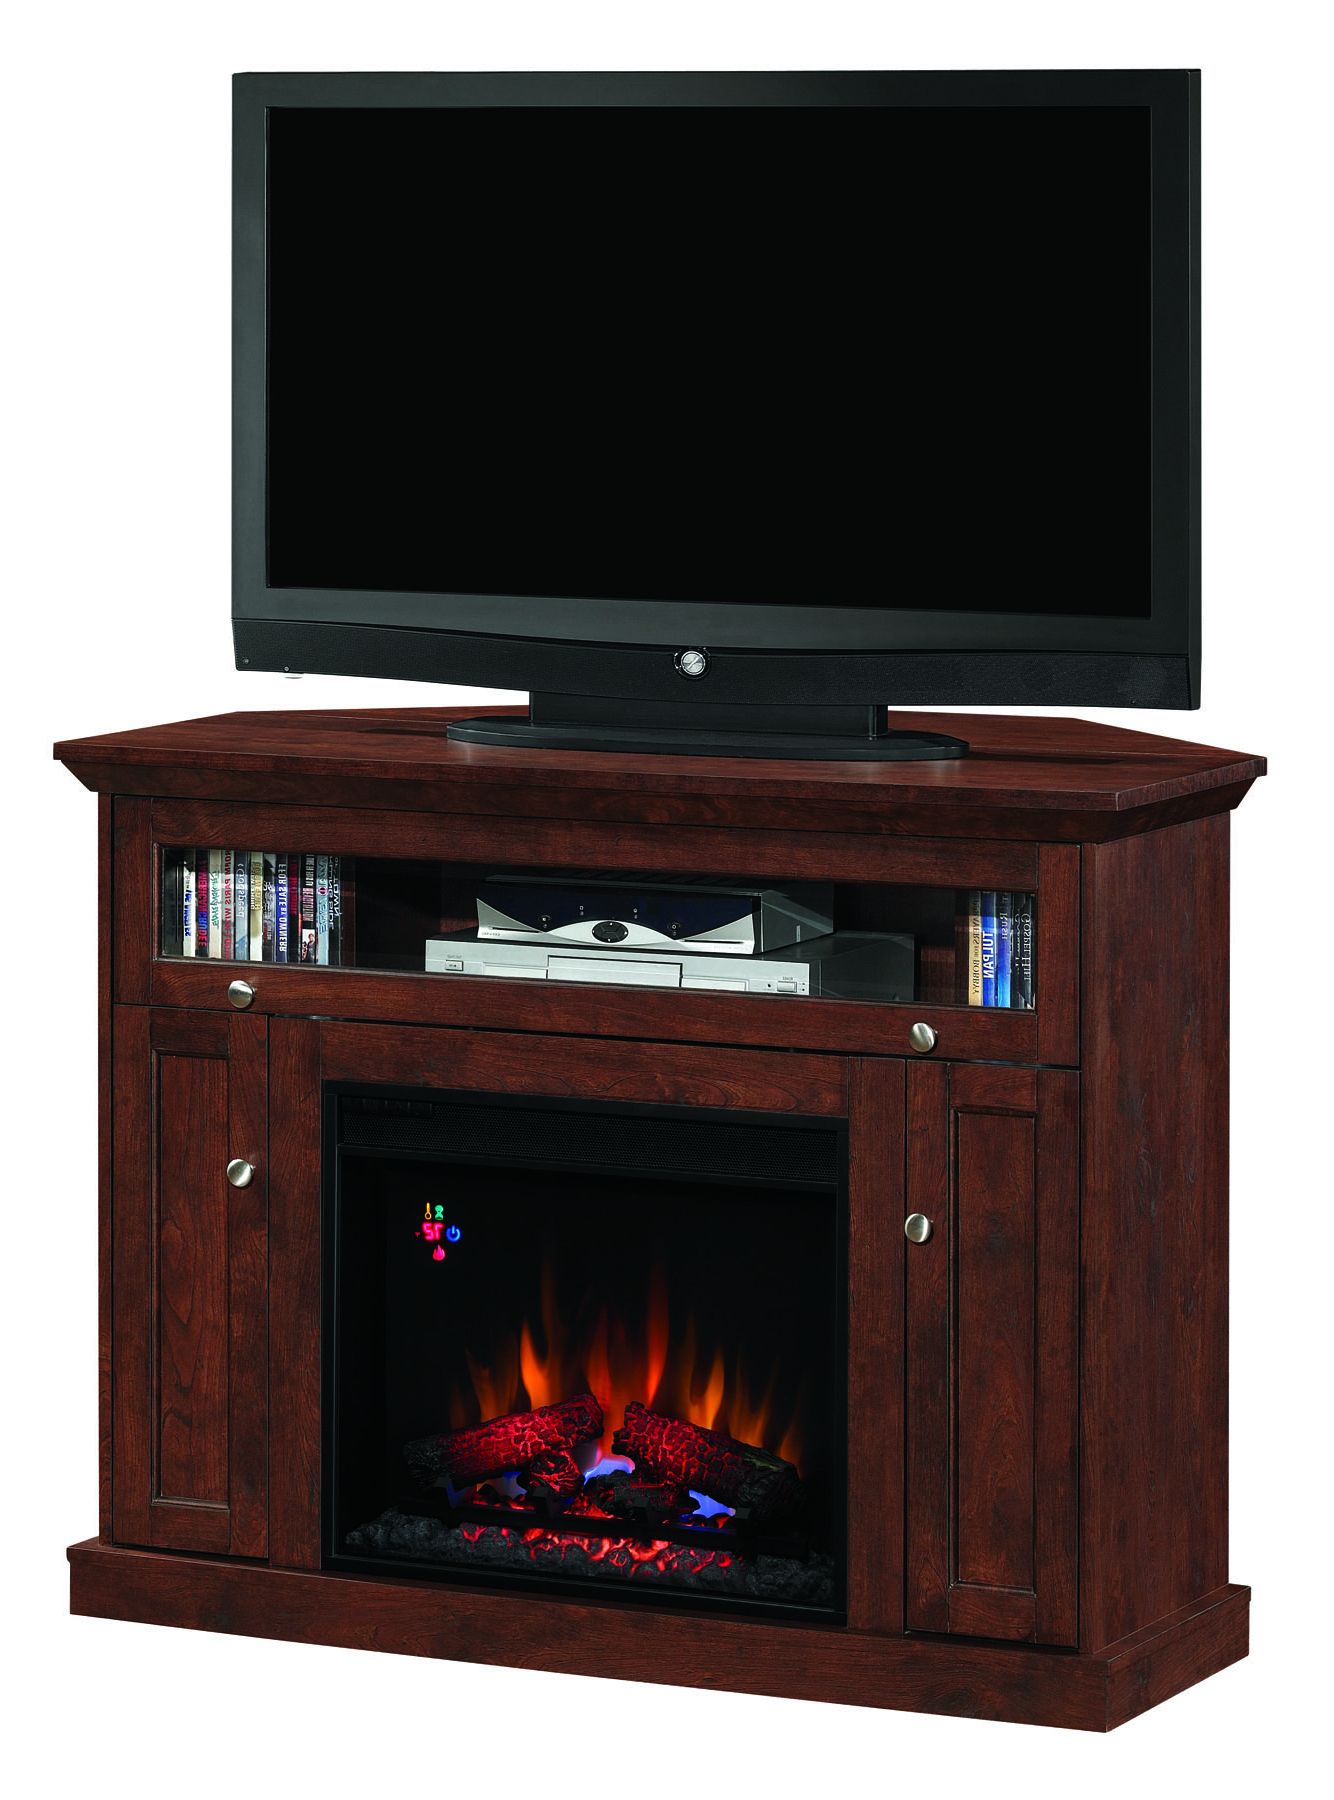 Favorite Big Lots Tv Stands Intended For Lowes Fireplace Big Lots White Walmart Tv Stands Electric Review And (View 6 of 20)